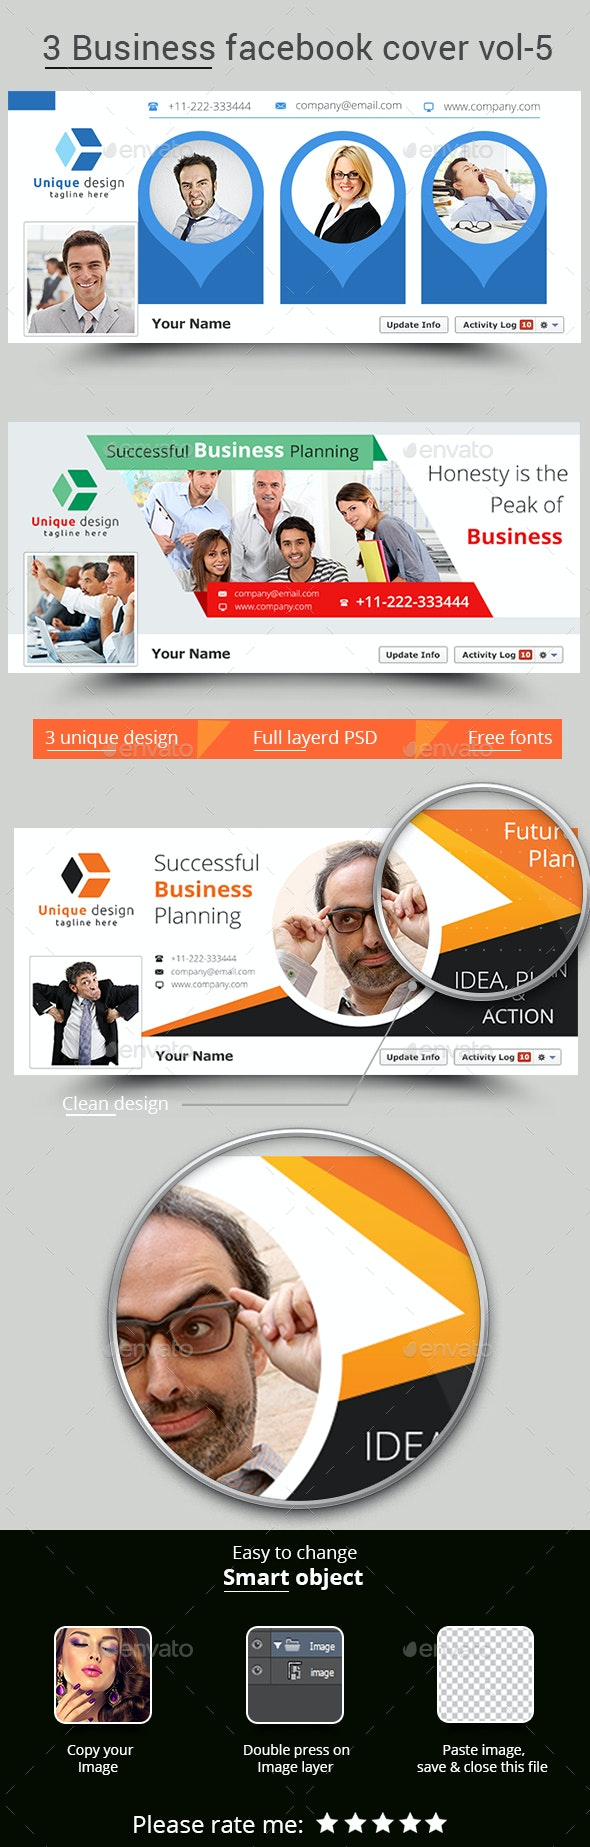 3 Business Facebook Cover Vol-5